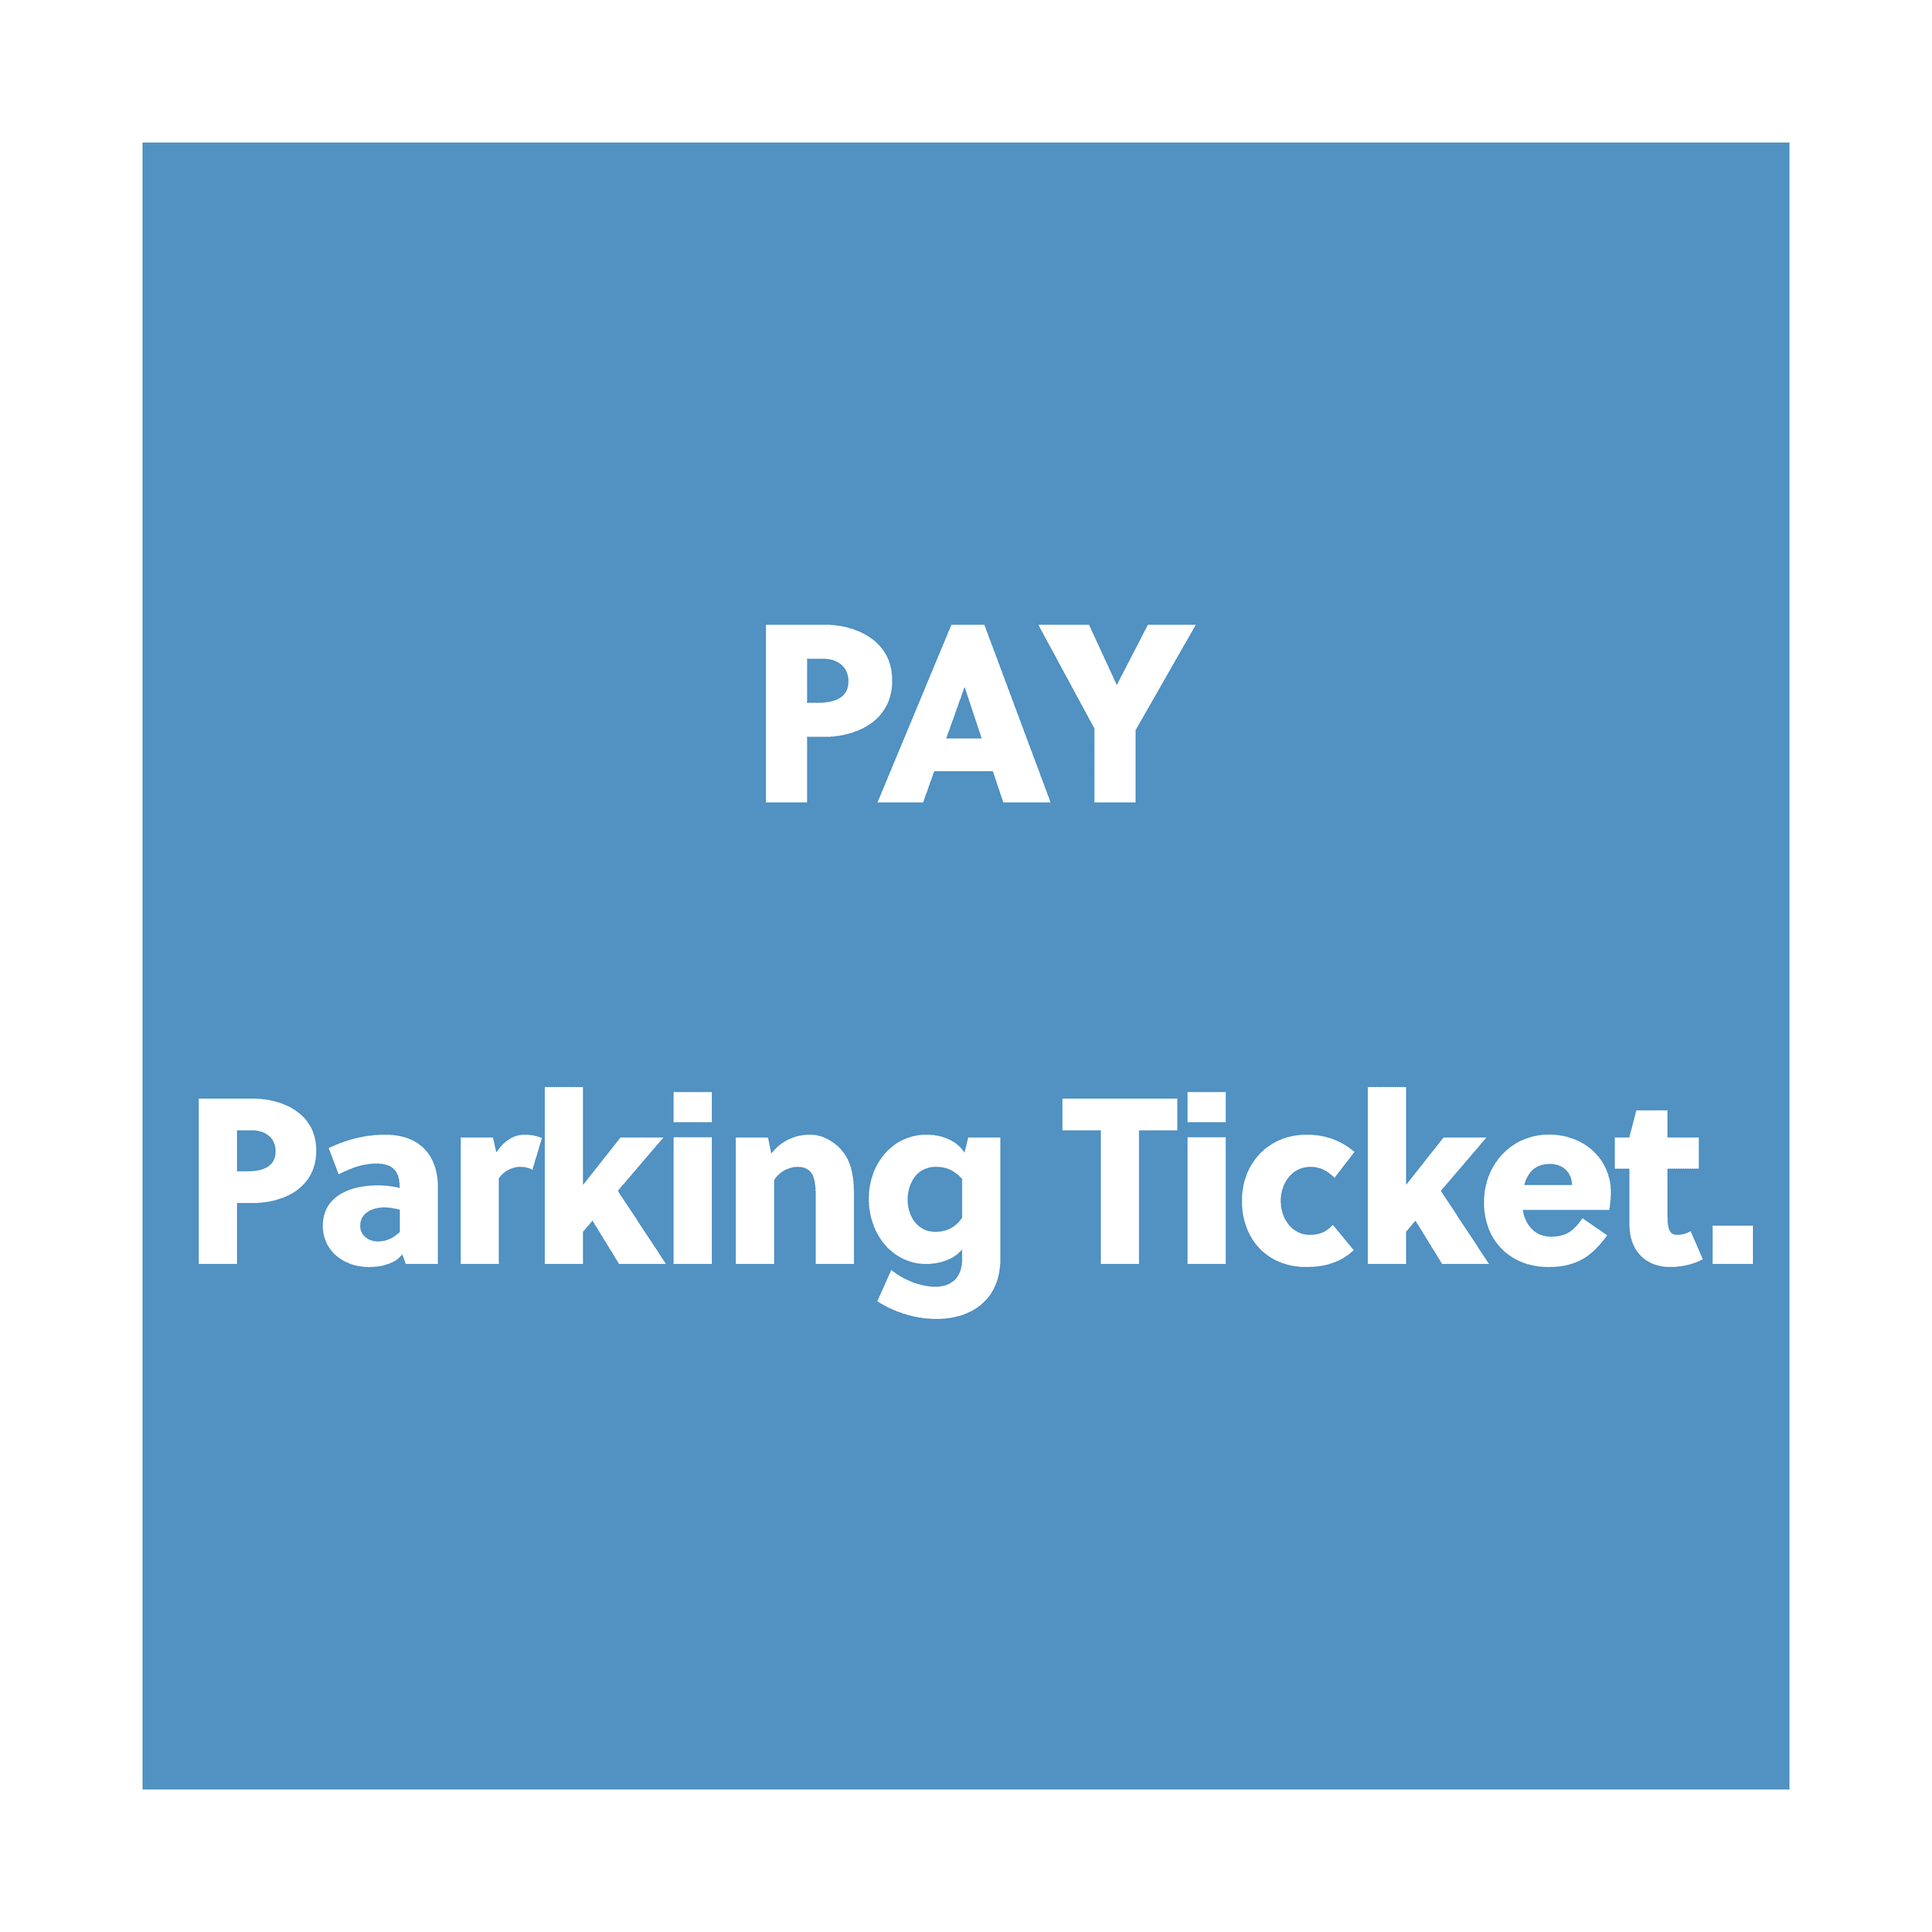 PARKING PAY Opens in new window